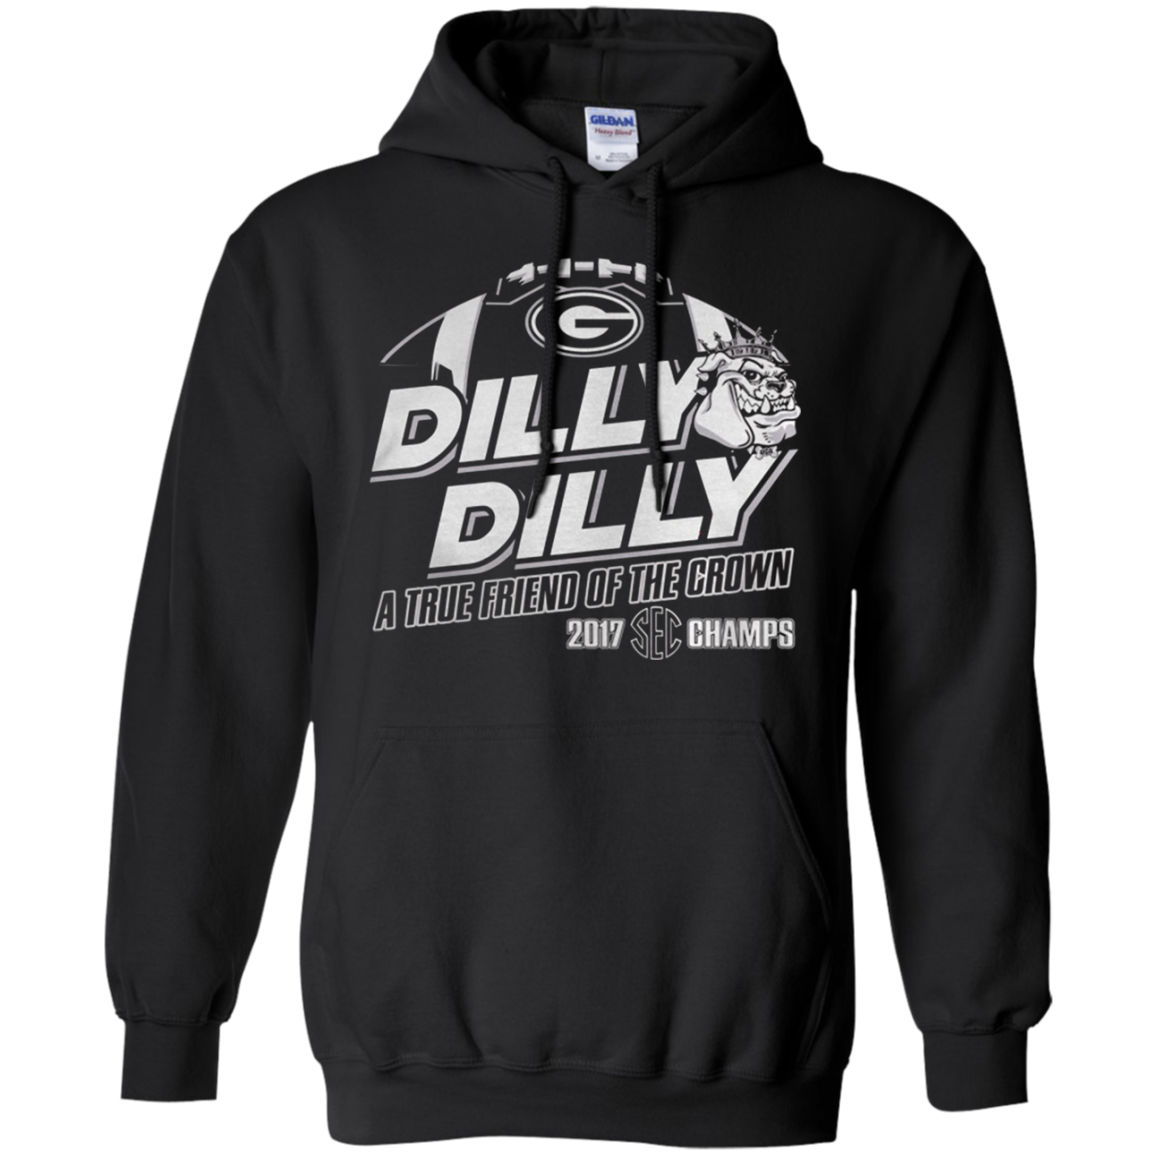 Shop Dilly Dilly Uga Tula Store Shirts